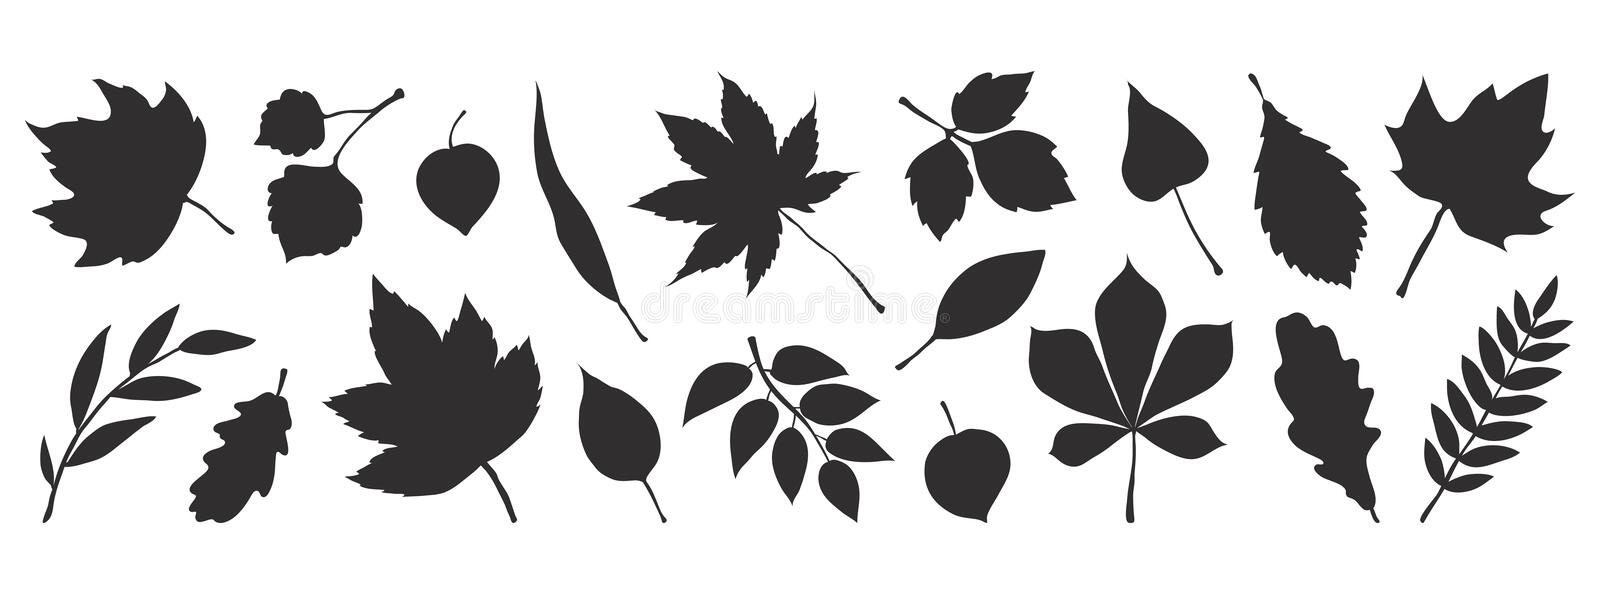 Black autumn leaves. Decorative fall elements isolated on white background. Vector foliage silhouettes for greeting. Black autumn leaves. Decorative fall stock illustration